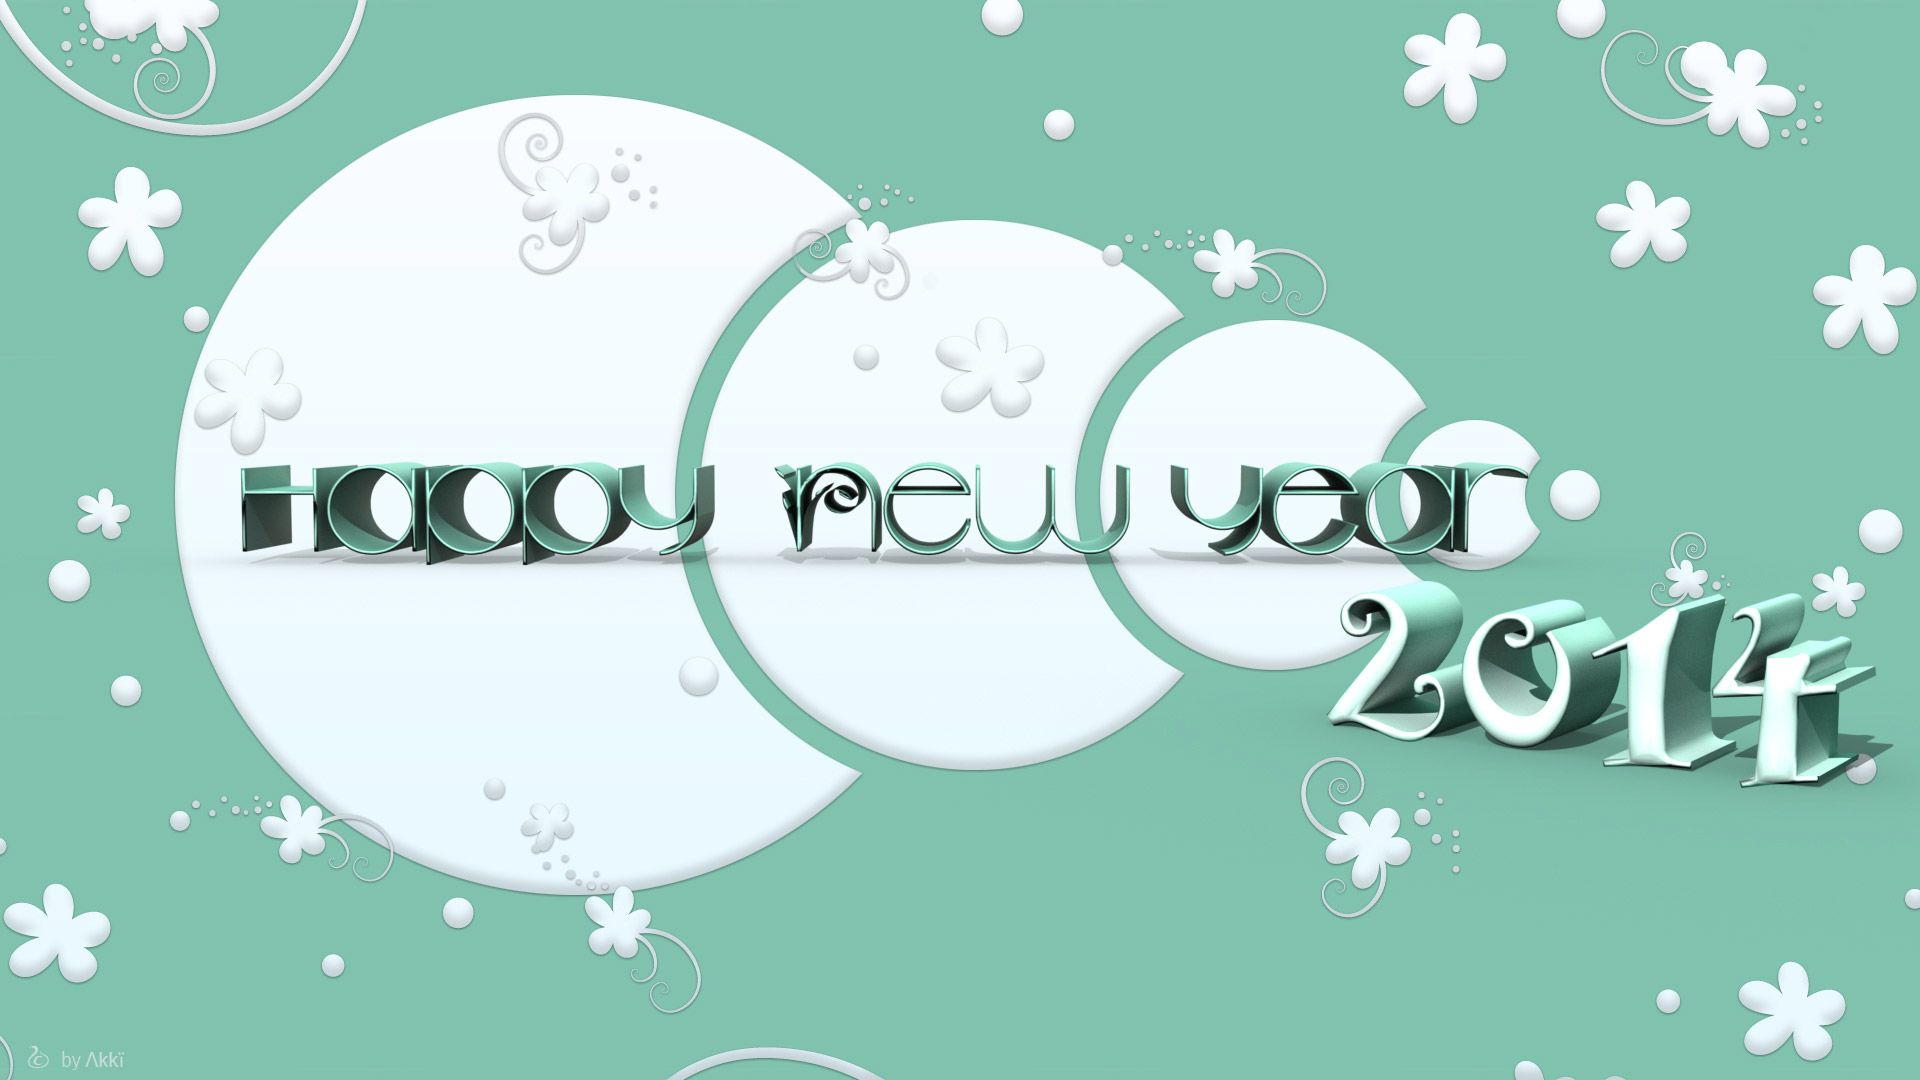 Happy new year 2014 wallpapers hd happy new year hd backgrounds happy new year 2014 wallpapers hd happy new year hd backgrounds voltagebd Gallery